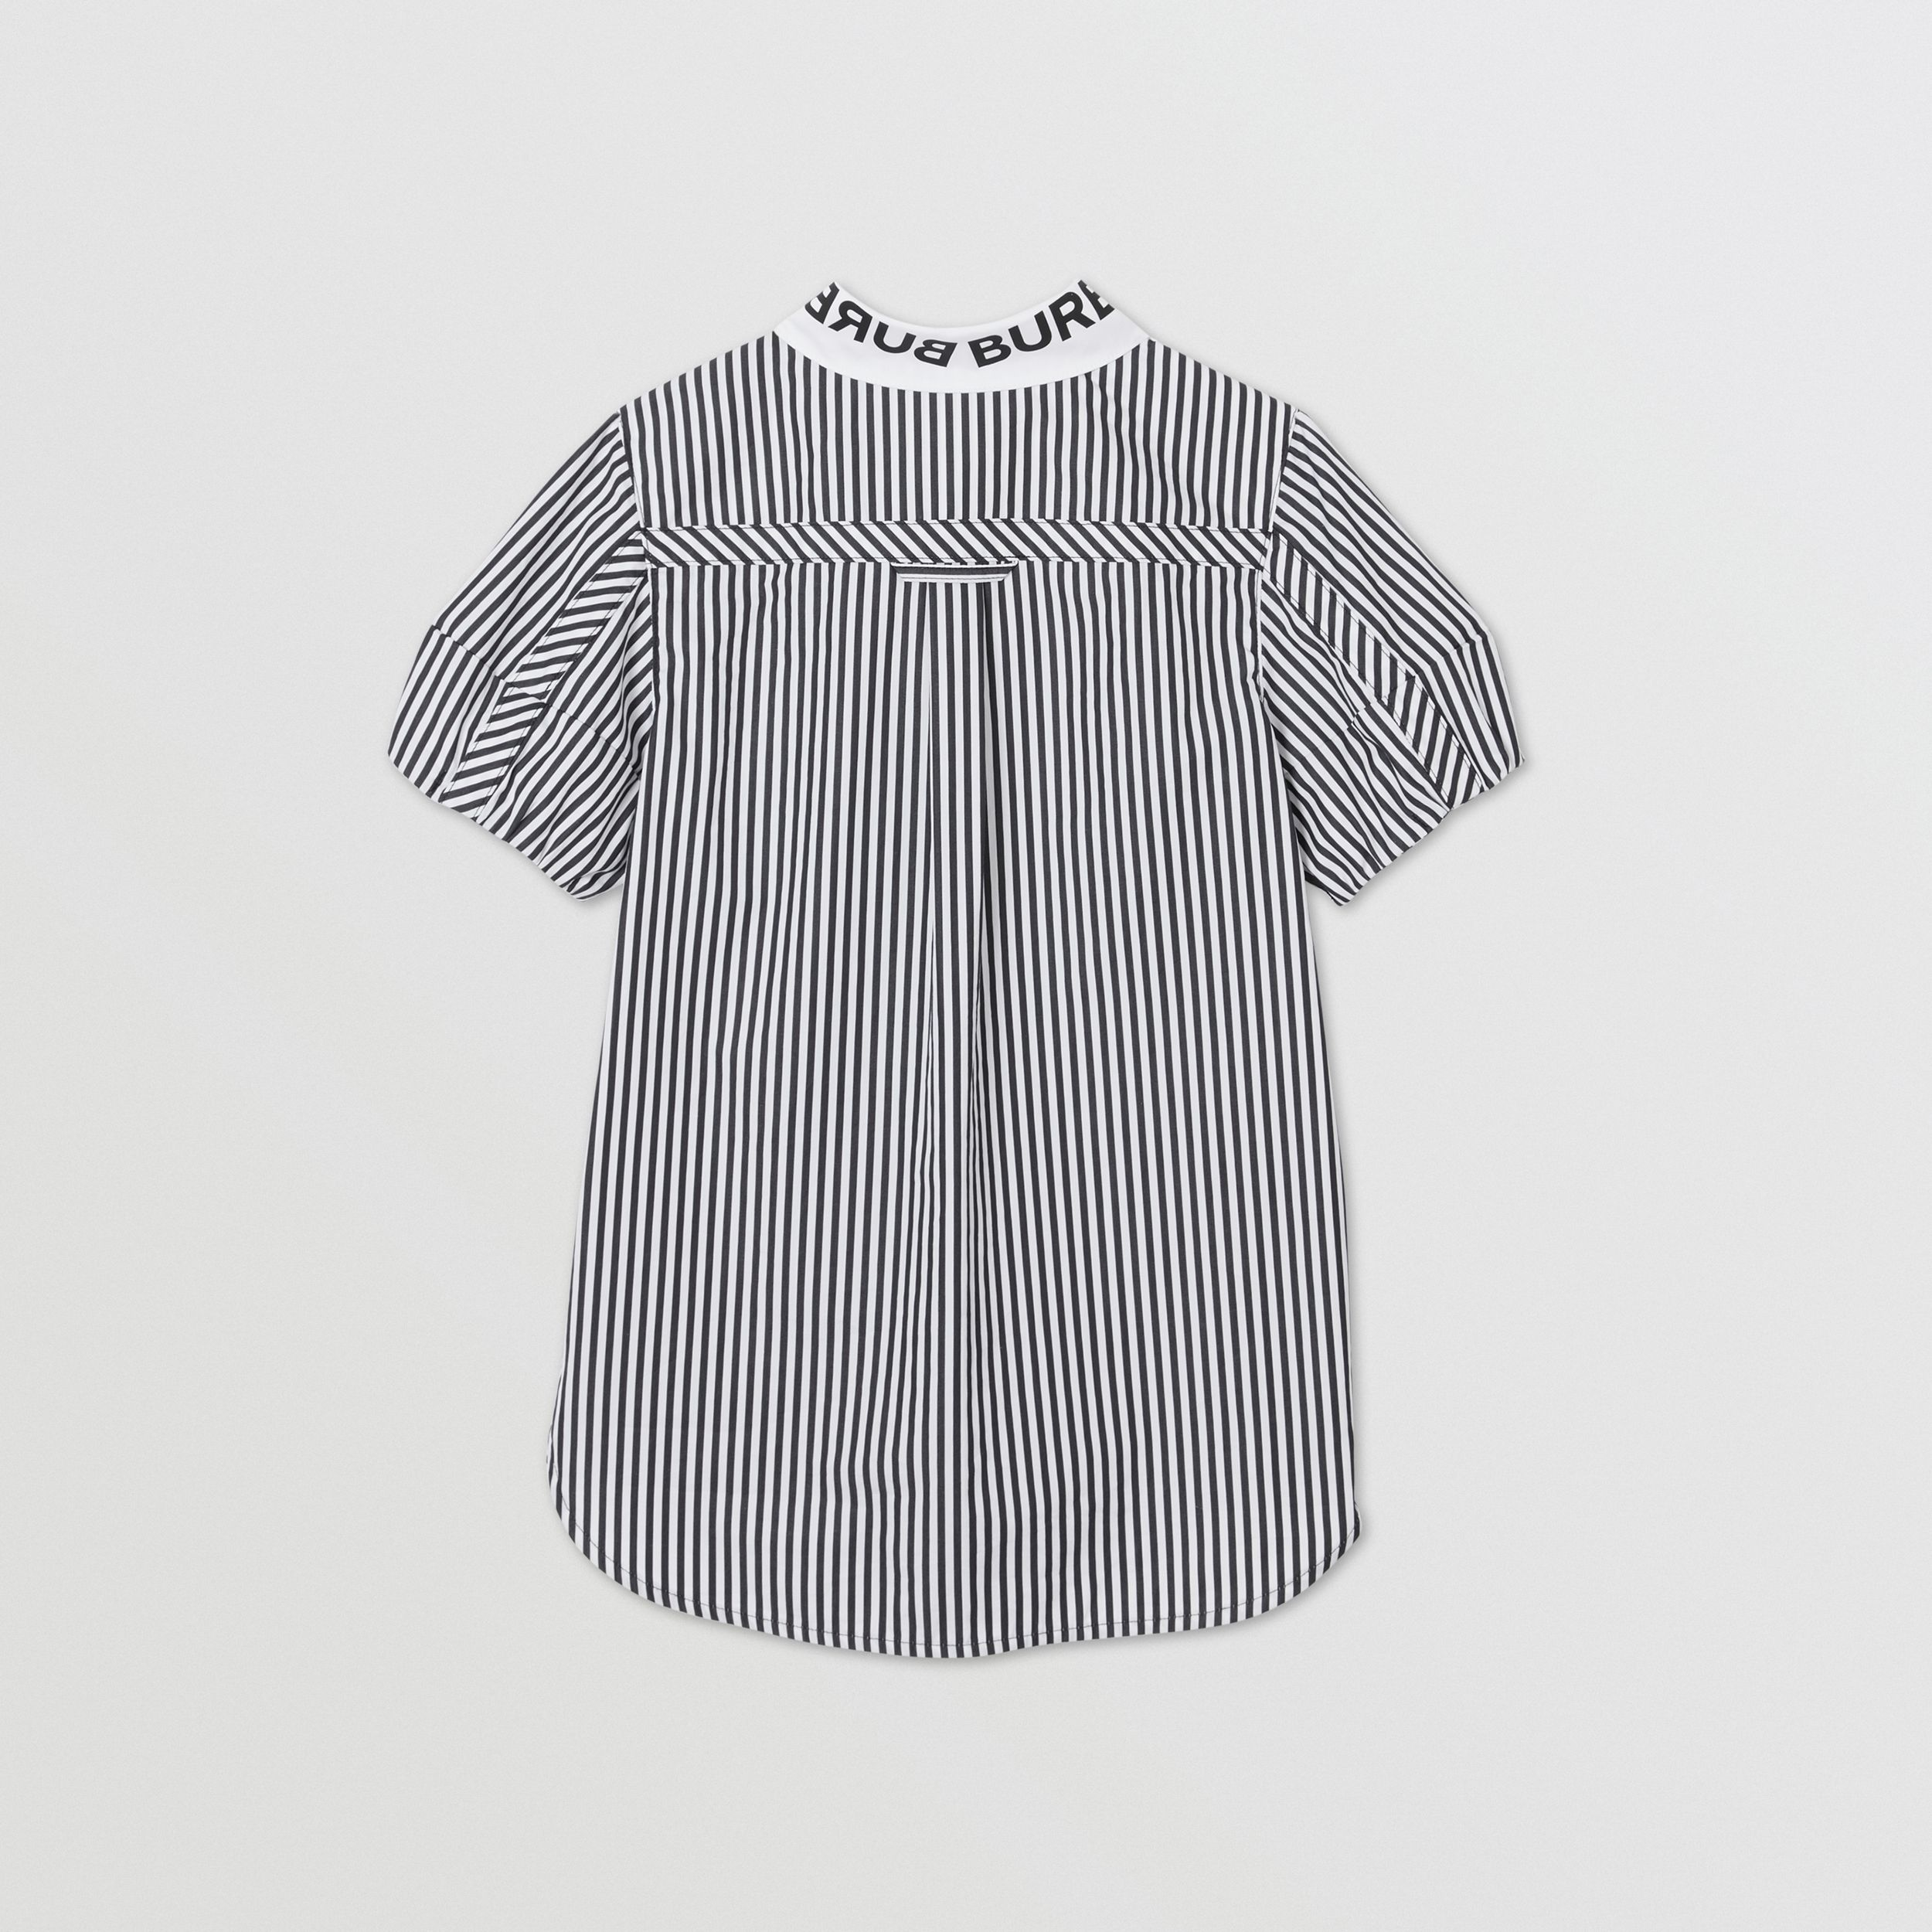 Logo Print Striped and Gingham Cotton Shirt Dress in Black | Burberry Singapore - 4